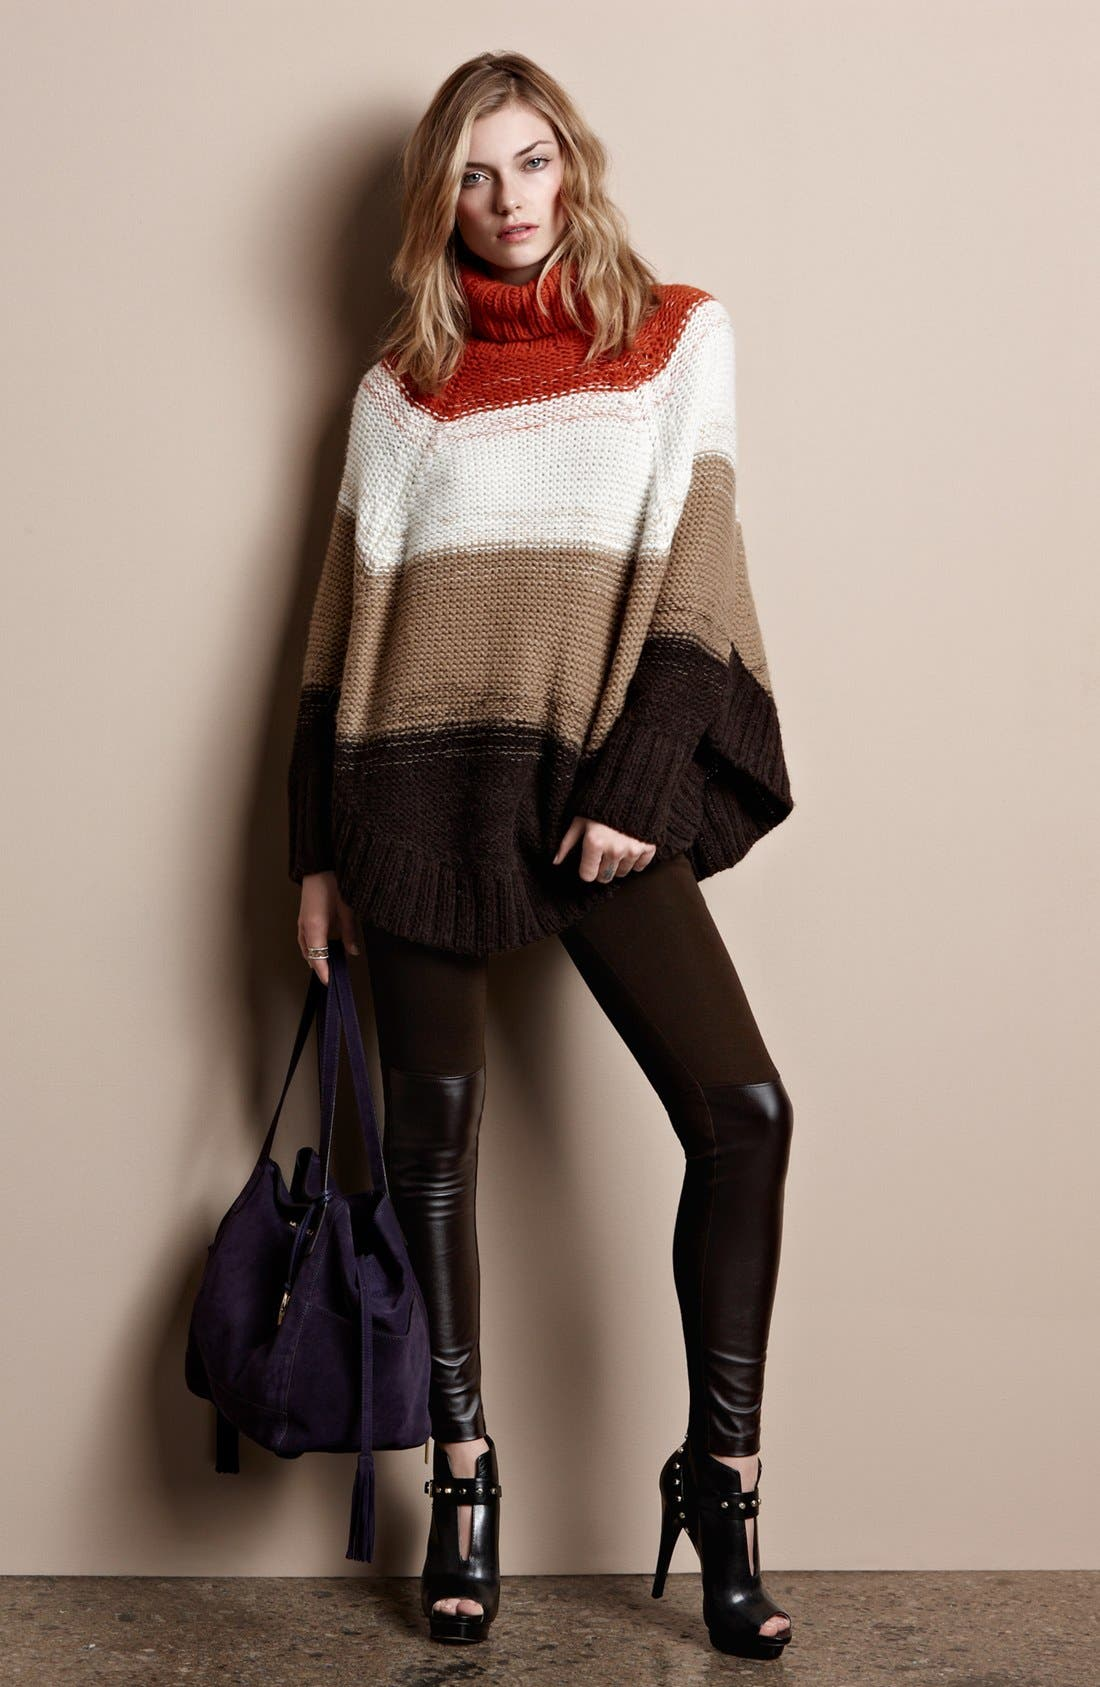 Alternate Image 1 Selected - MICHAEL Michael Kors Poncho Sweater, Pants & Accessories